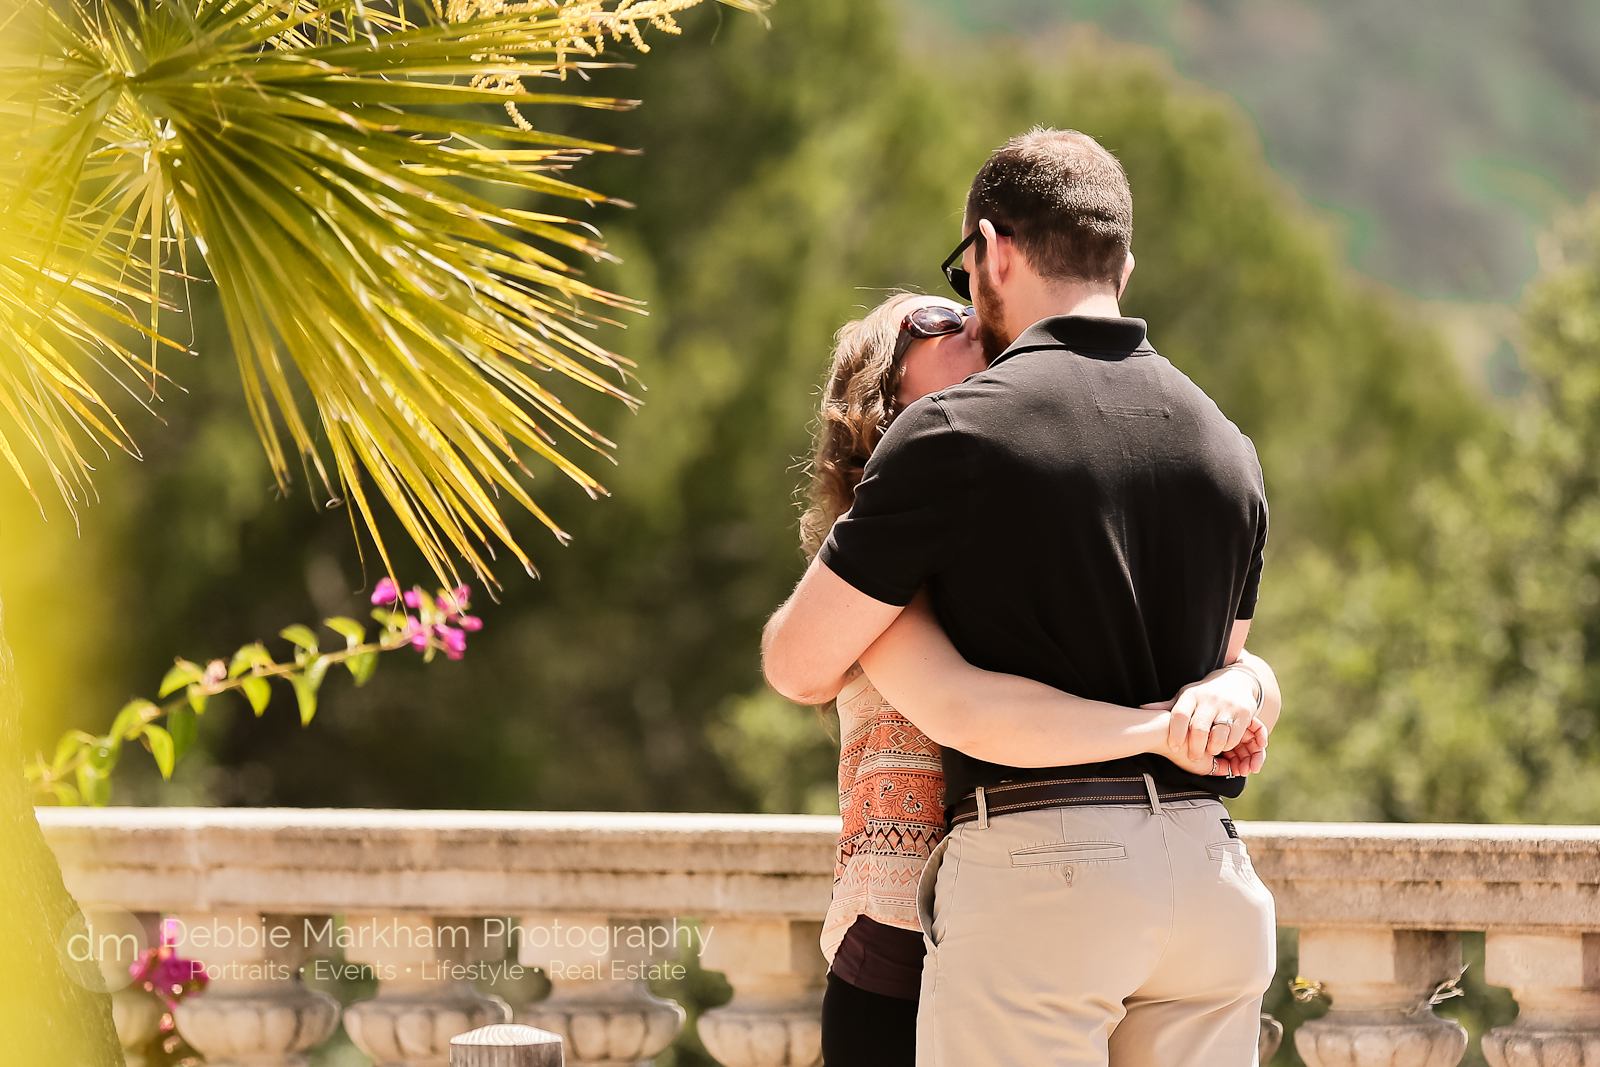 4-29-15 Surprise Proposal at Hearst Castle-5234